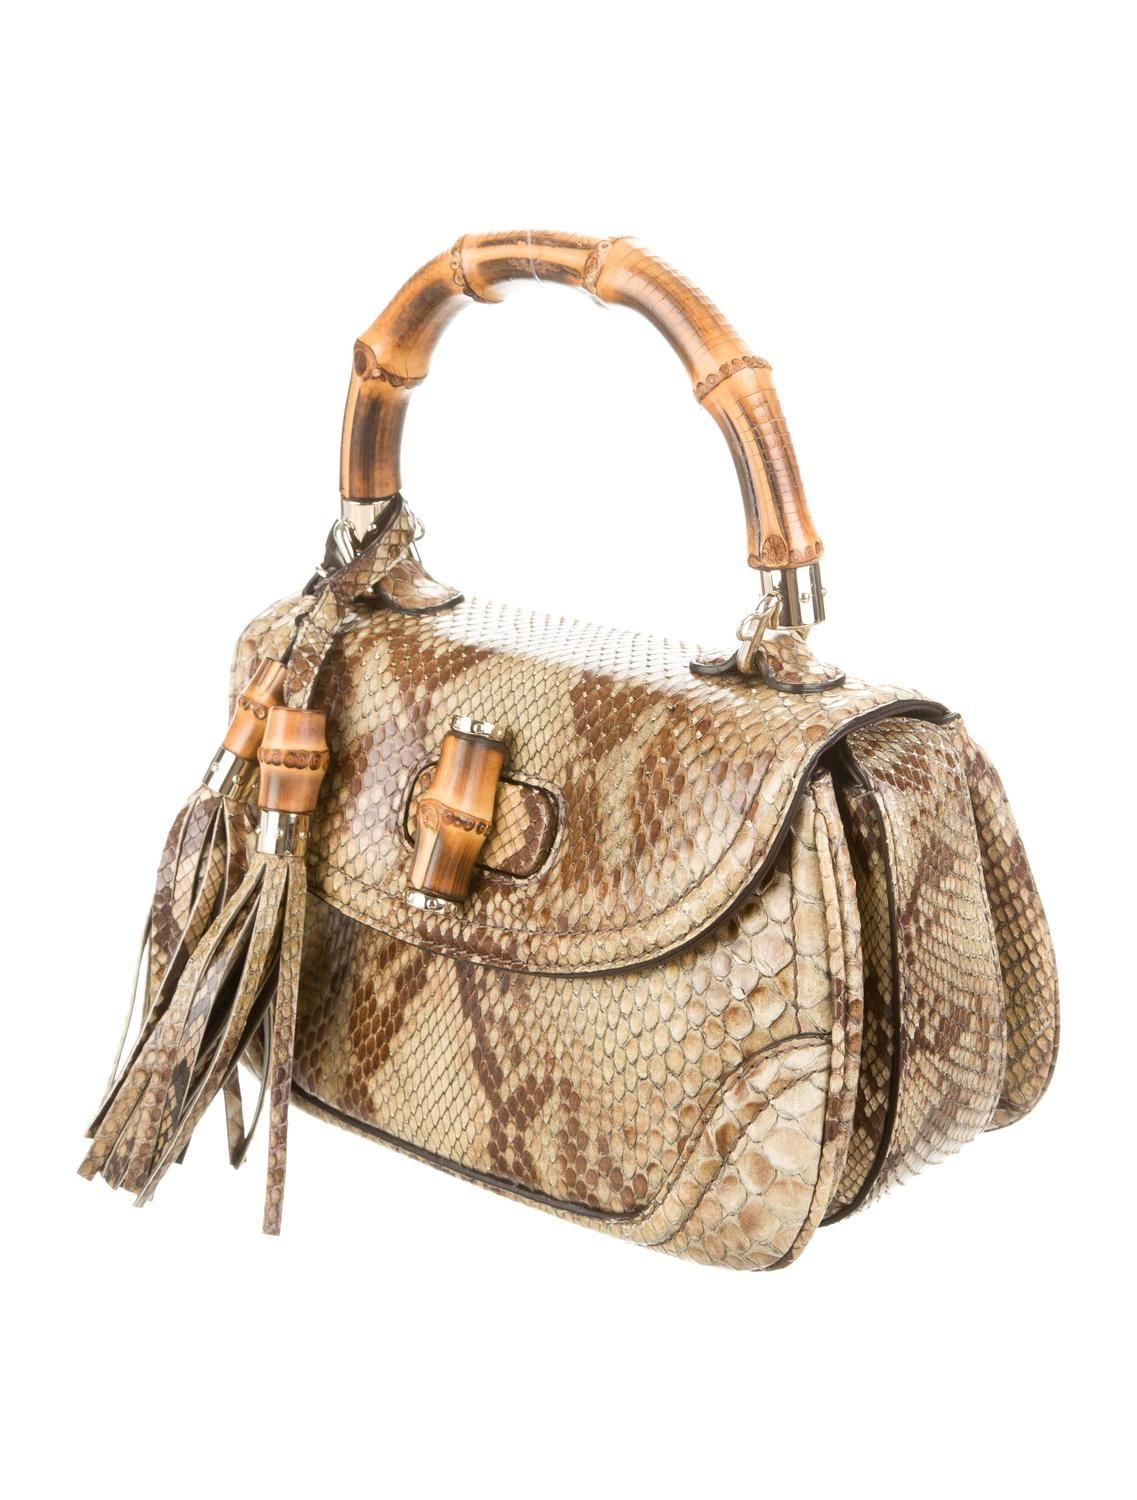 fbd6e11f2 Gucci Nude & Brown Python Snakeskin Bamboo Top Handle Flap Satchel  Shoulder Bag | From